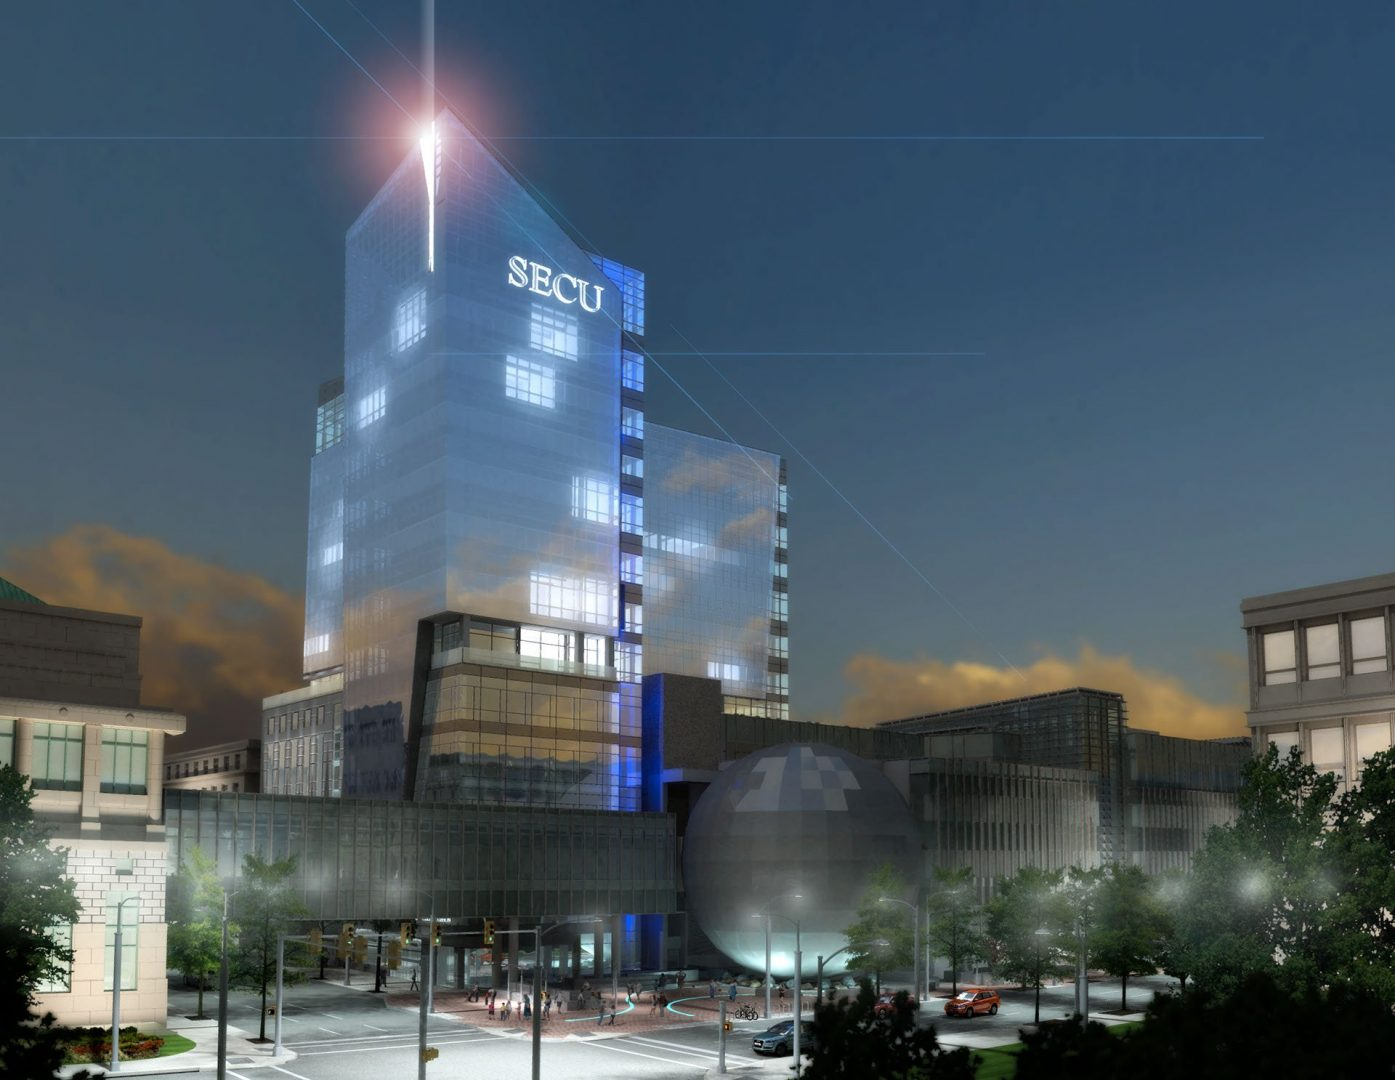 a 3D rendered night lighting study made for the architecture firm designing the state employees credit union building in raleigh nc